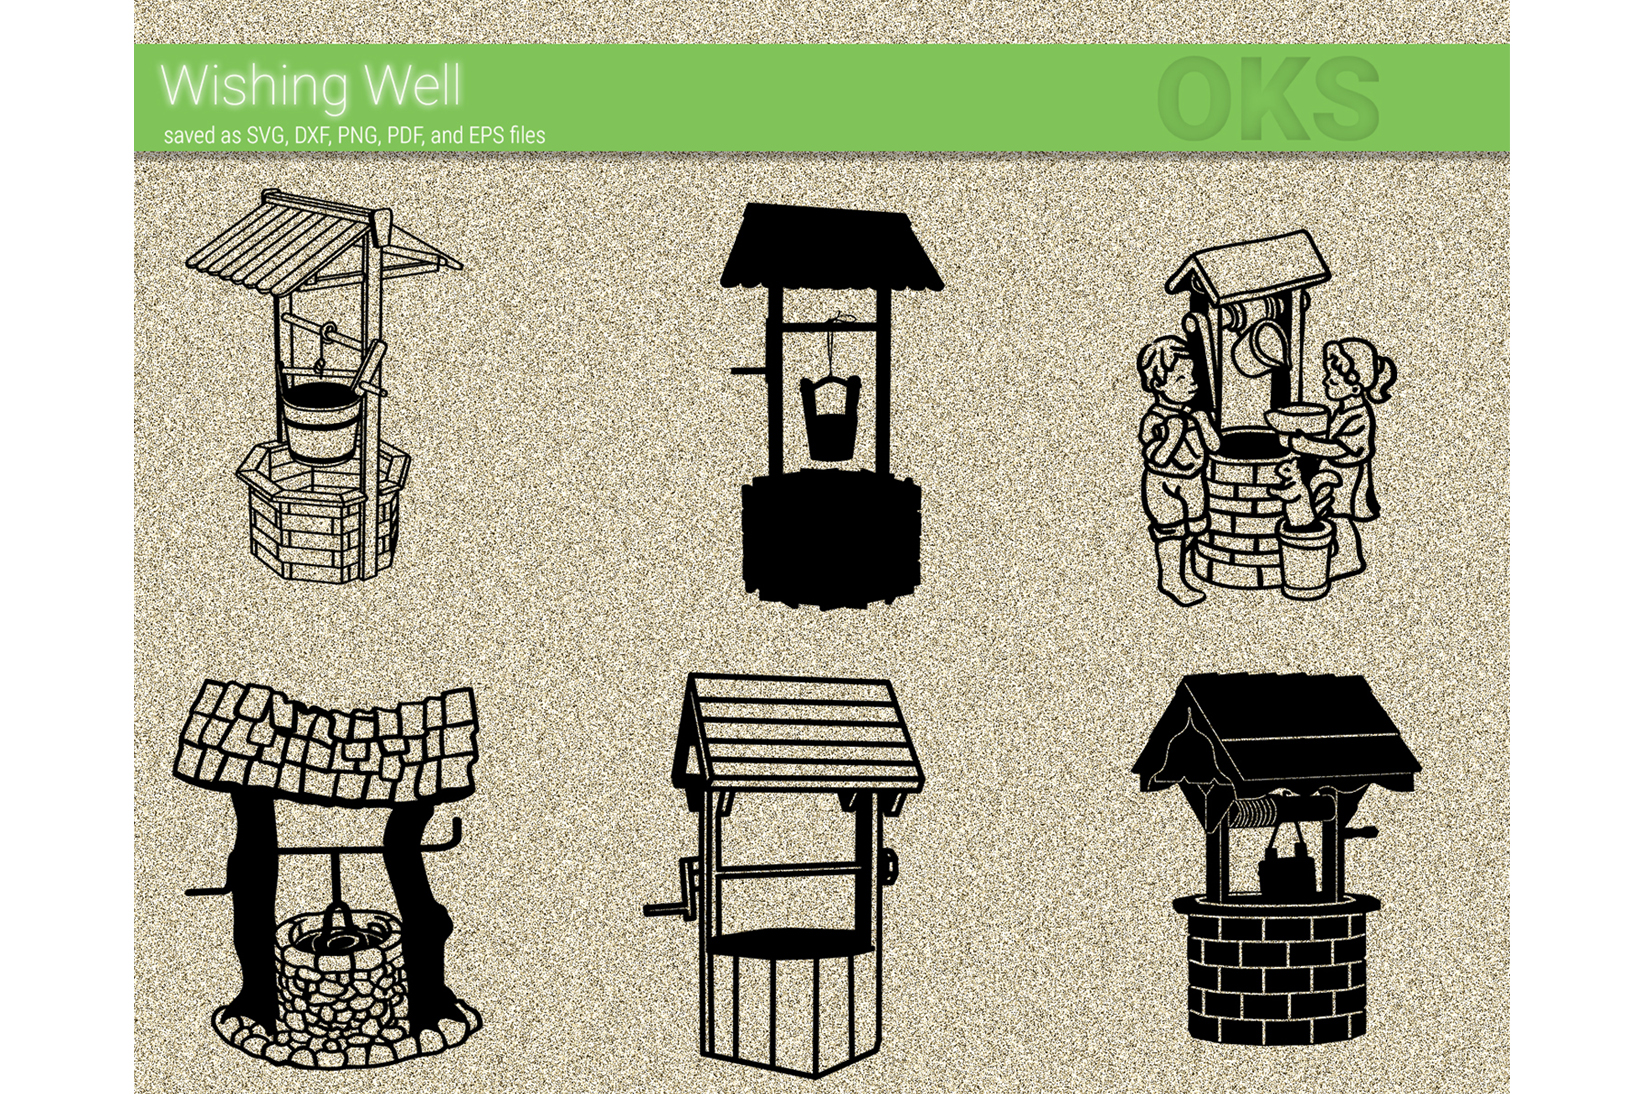 Download Free Wishing Well Vector Graphic By Crafteroks Creative Fabrica for Cricut Explore, Silhouette and other cutting machines.